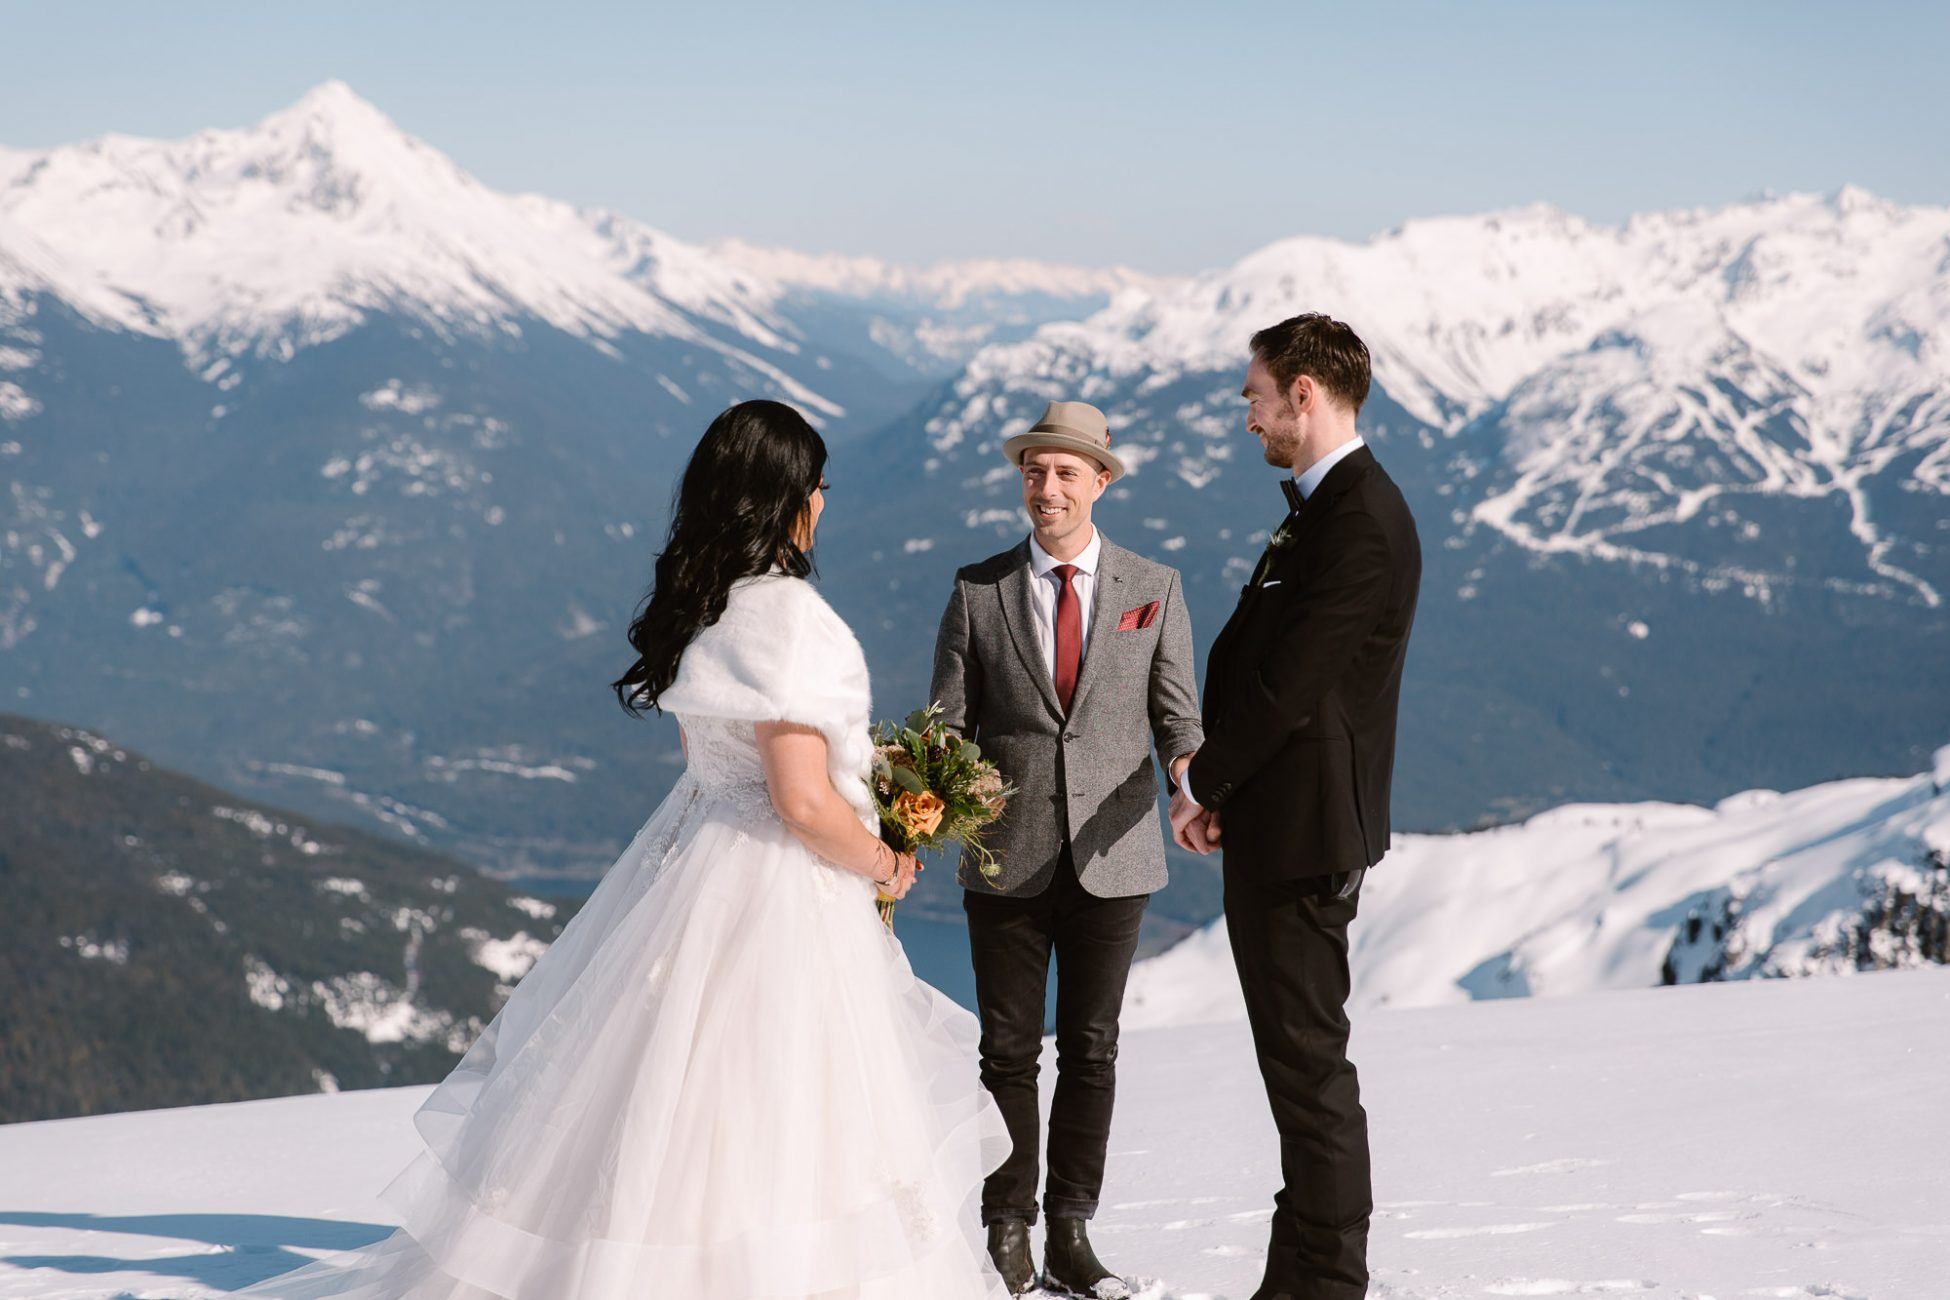 helicopter elopement in Whistler - wedding ceremony with bride and groom and a pastor with mountain backdrop